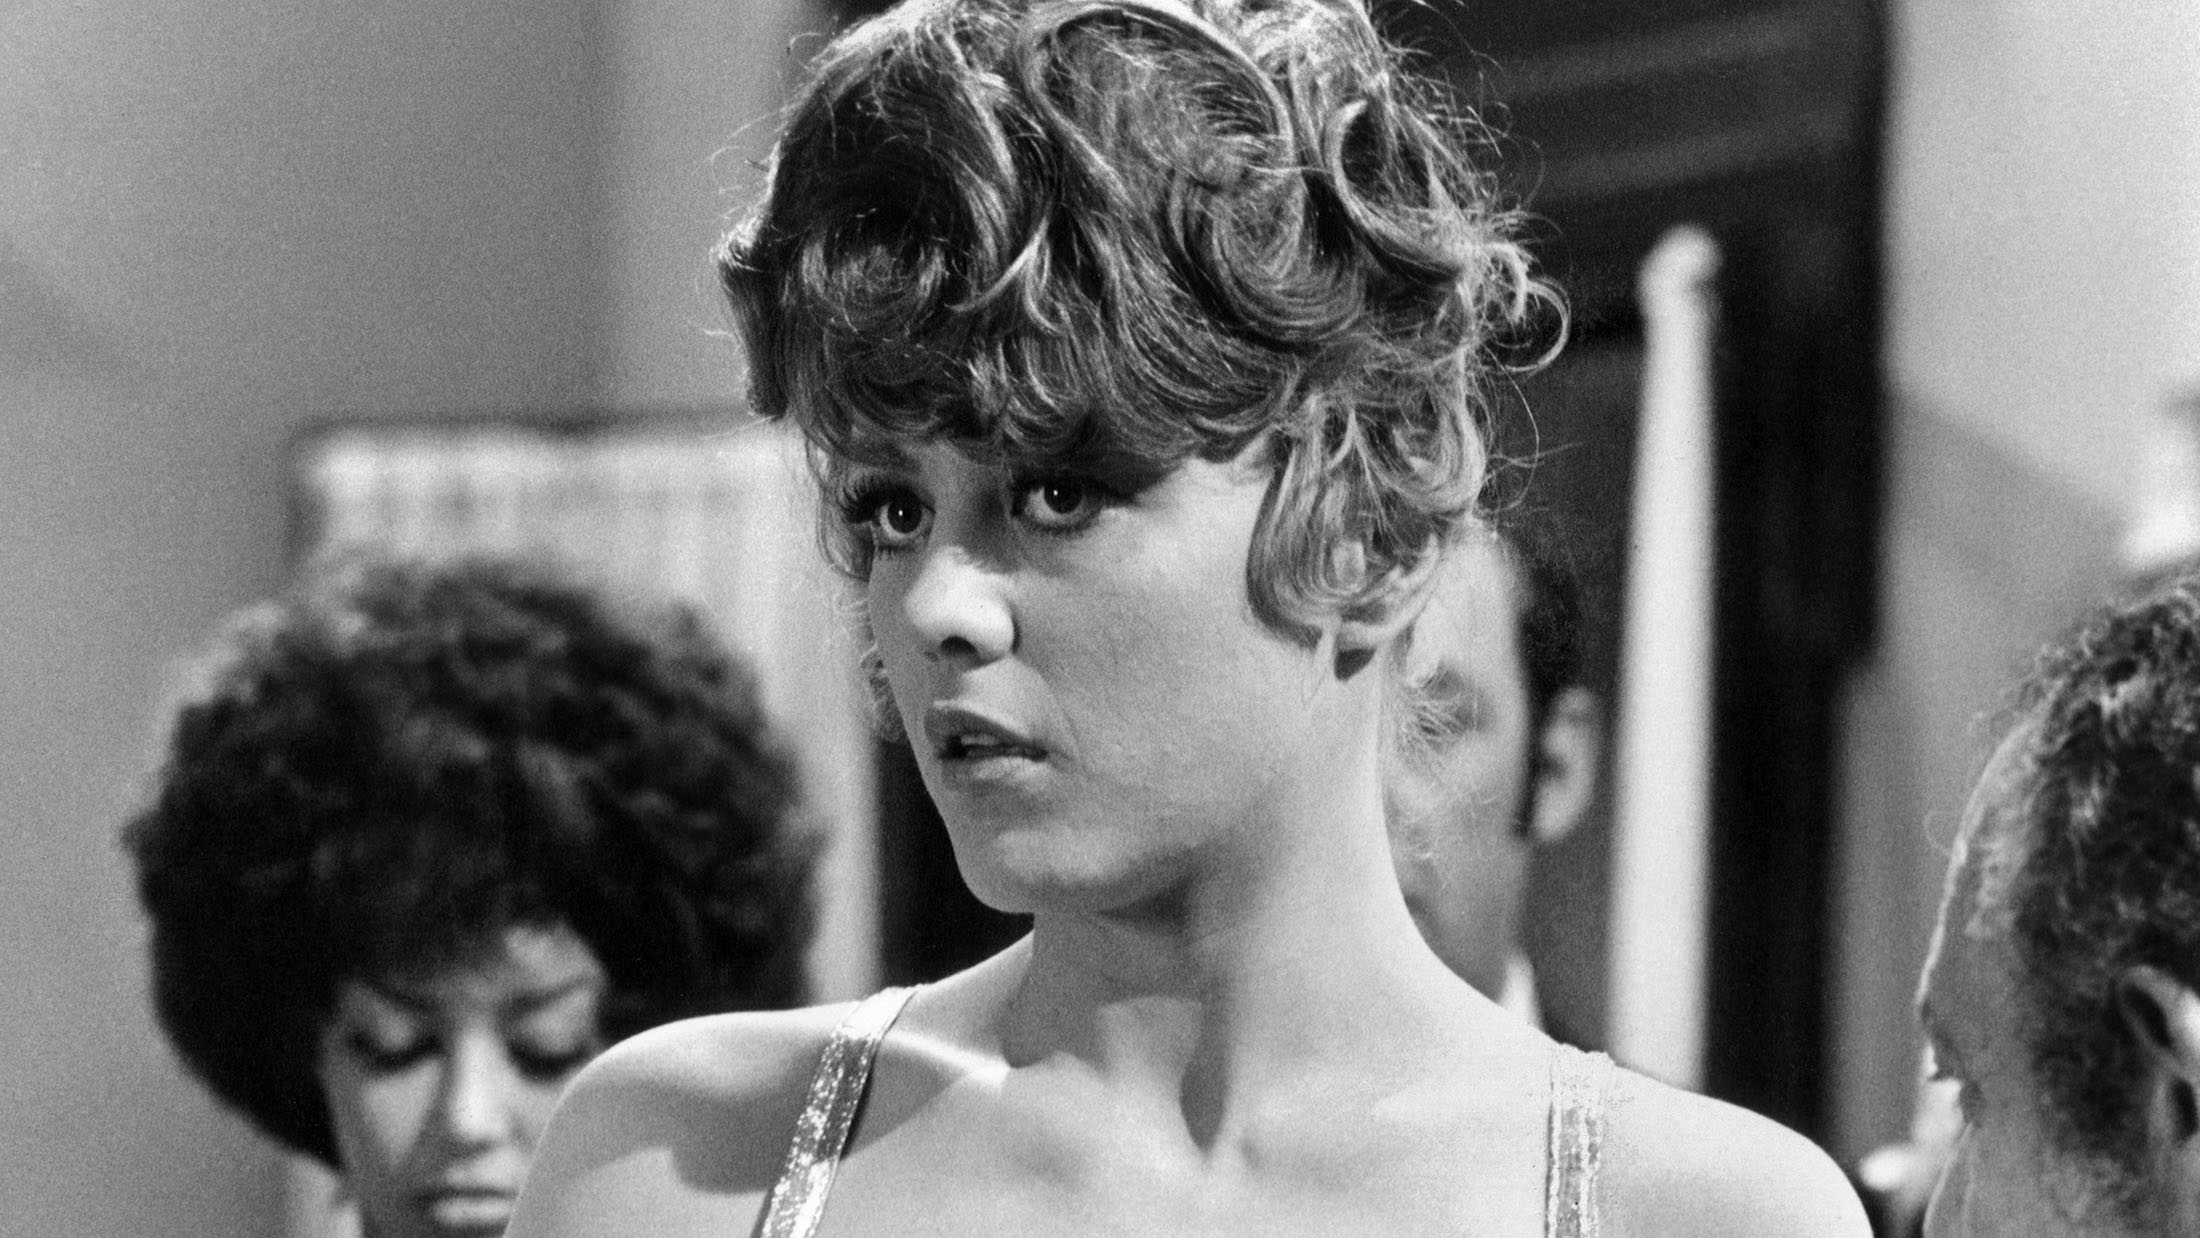 Margaret Nolan, 'Goldfinger' Model and Actress in 'A Hard Day's Night,' Dies at 76